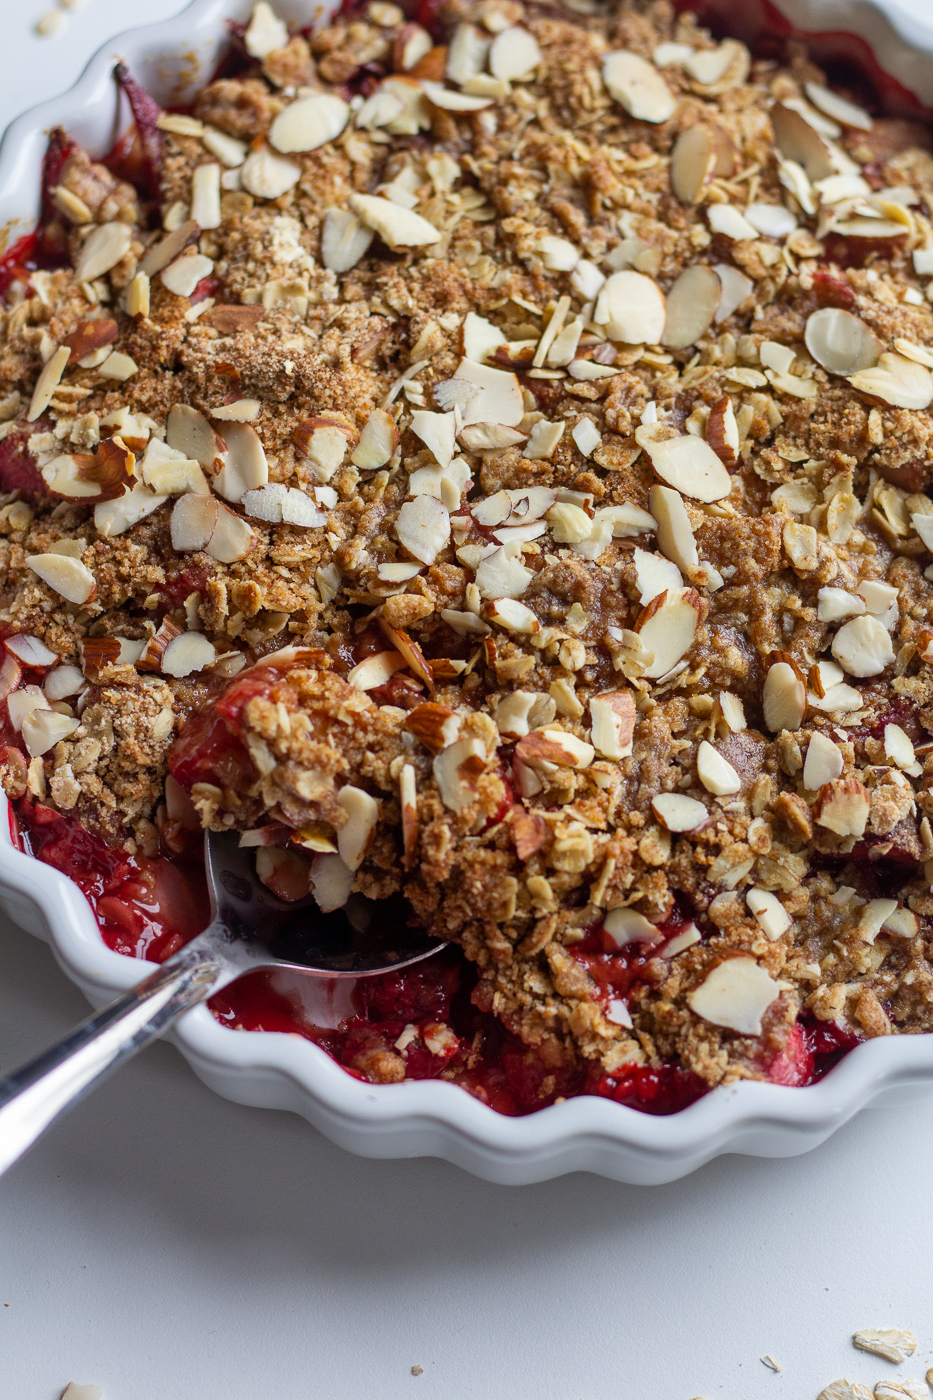 Healthier Strawberry Rhubarb Crisp